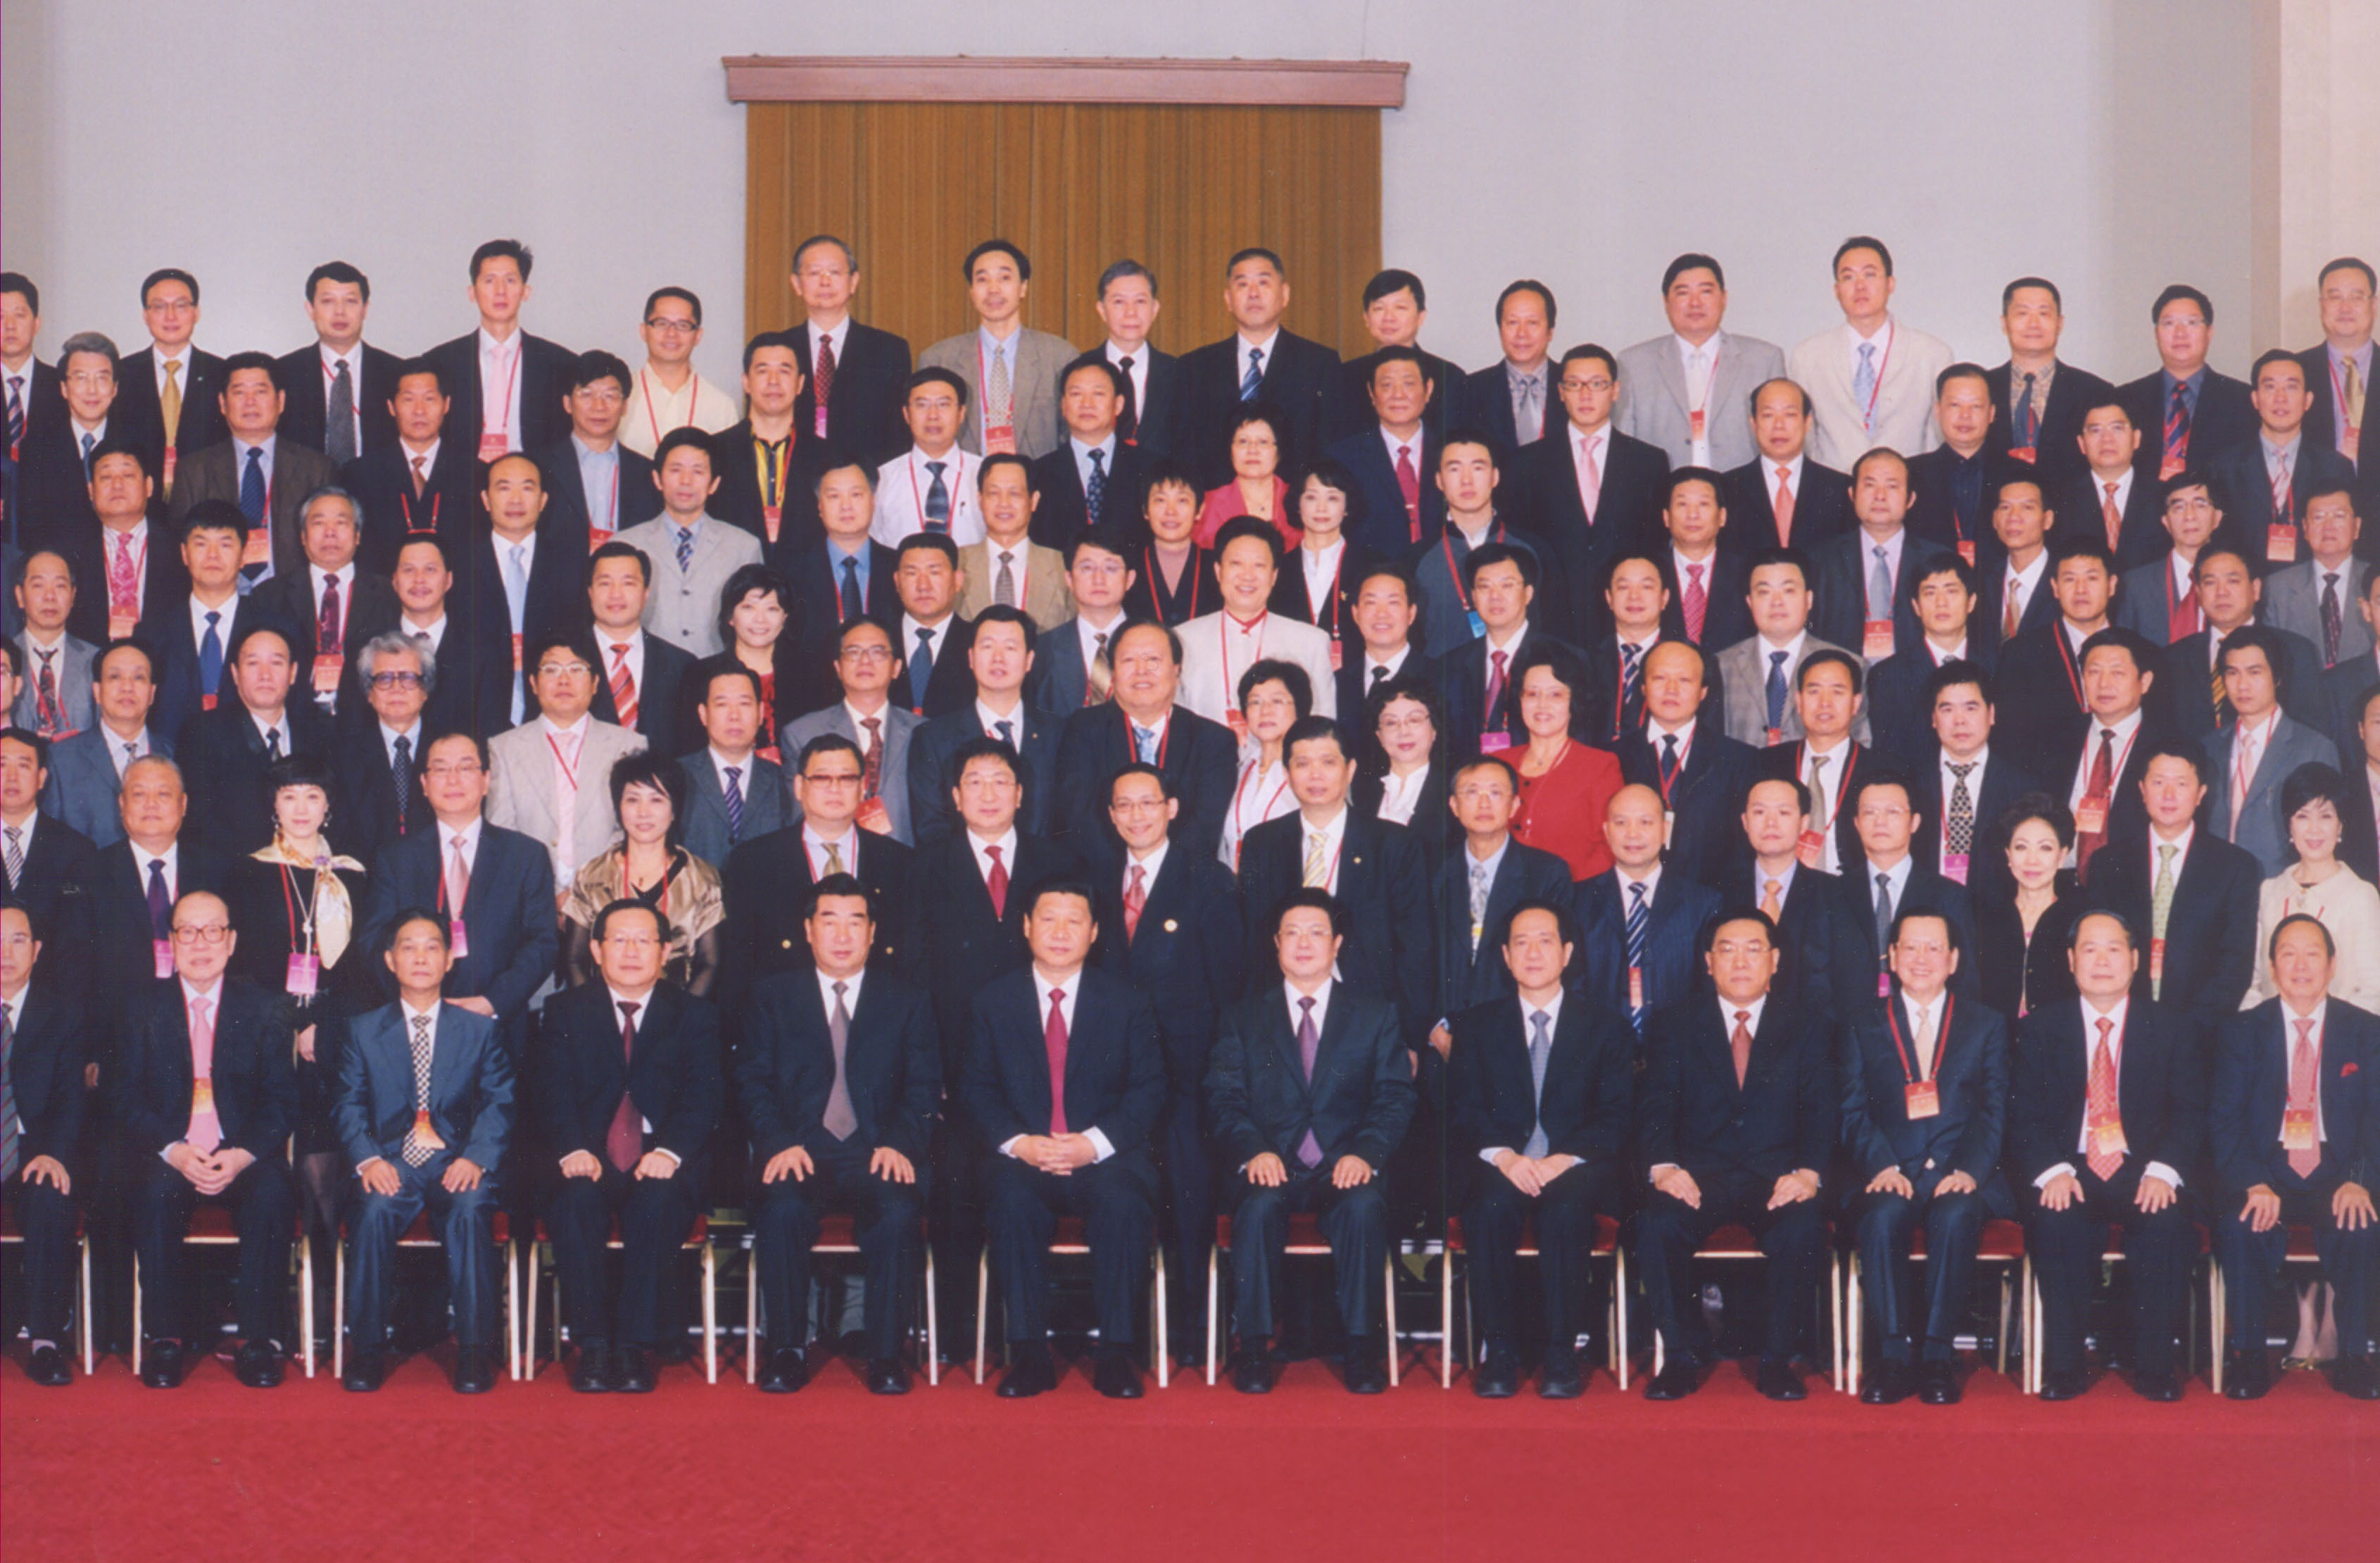 President Bin Chen with the President-elect and Vice President of the Chinese Chamber of Commerce in a group photo with President Xi Jinping